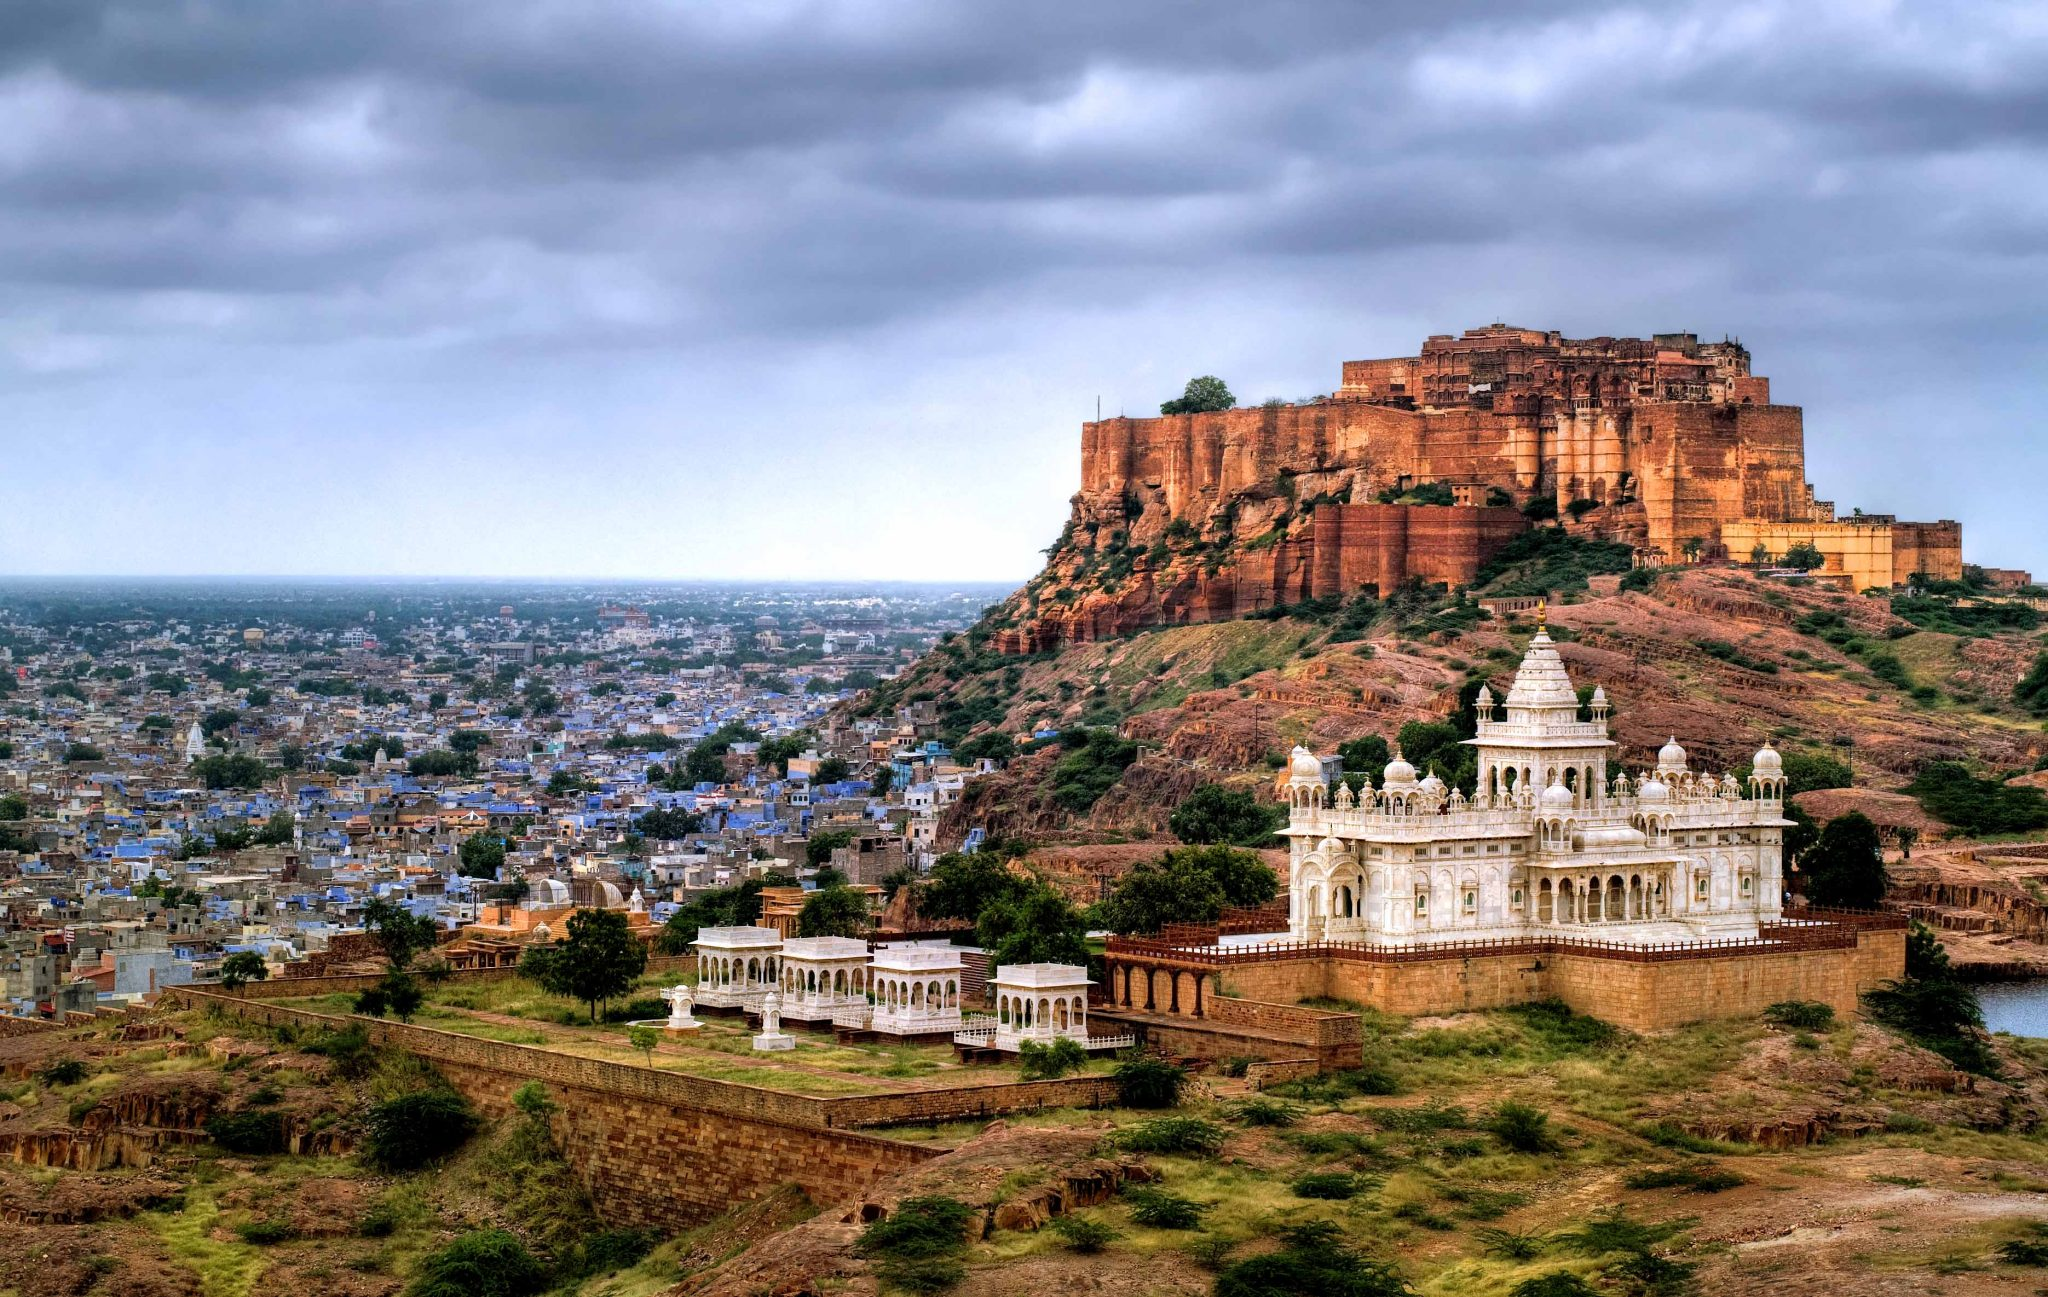 Mehrangarh Fort Jaswant Thada Jodhpur India India Tours and Travel Specialists Best of Rajasthan